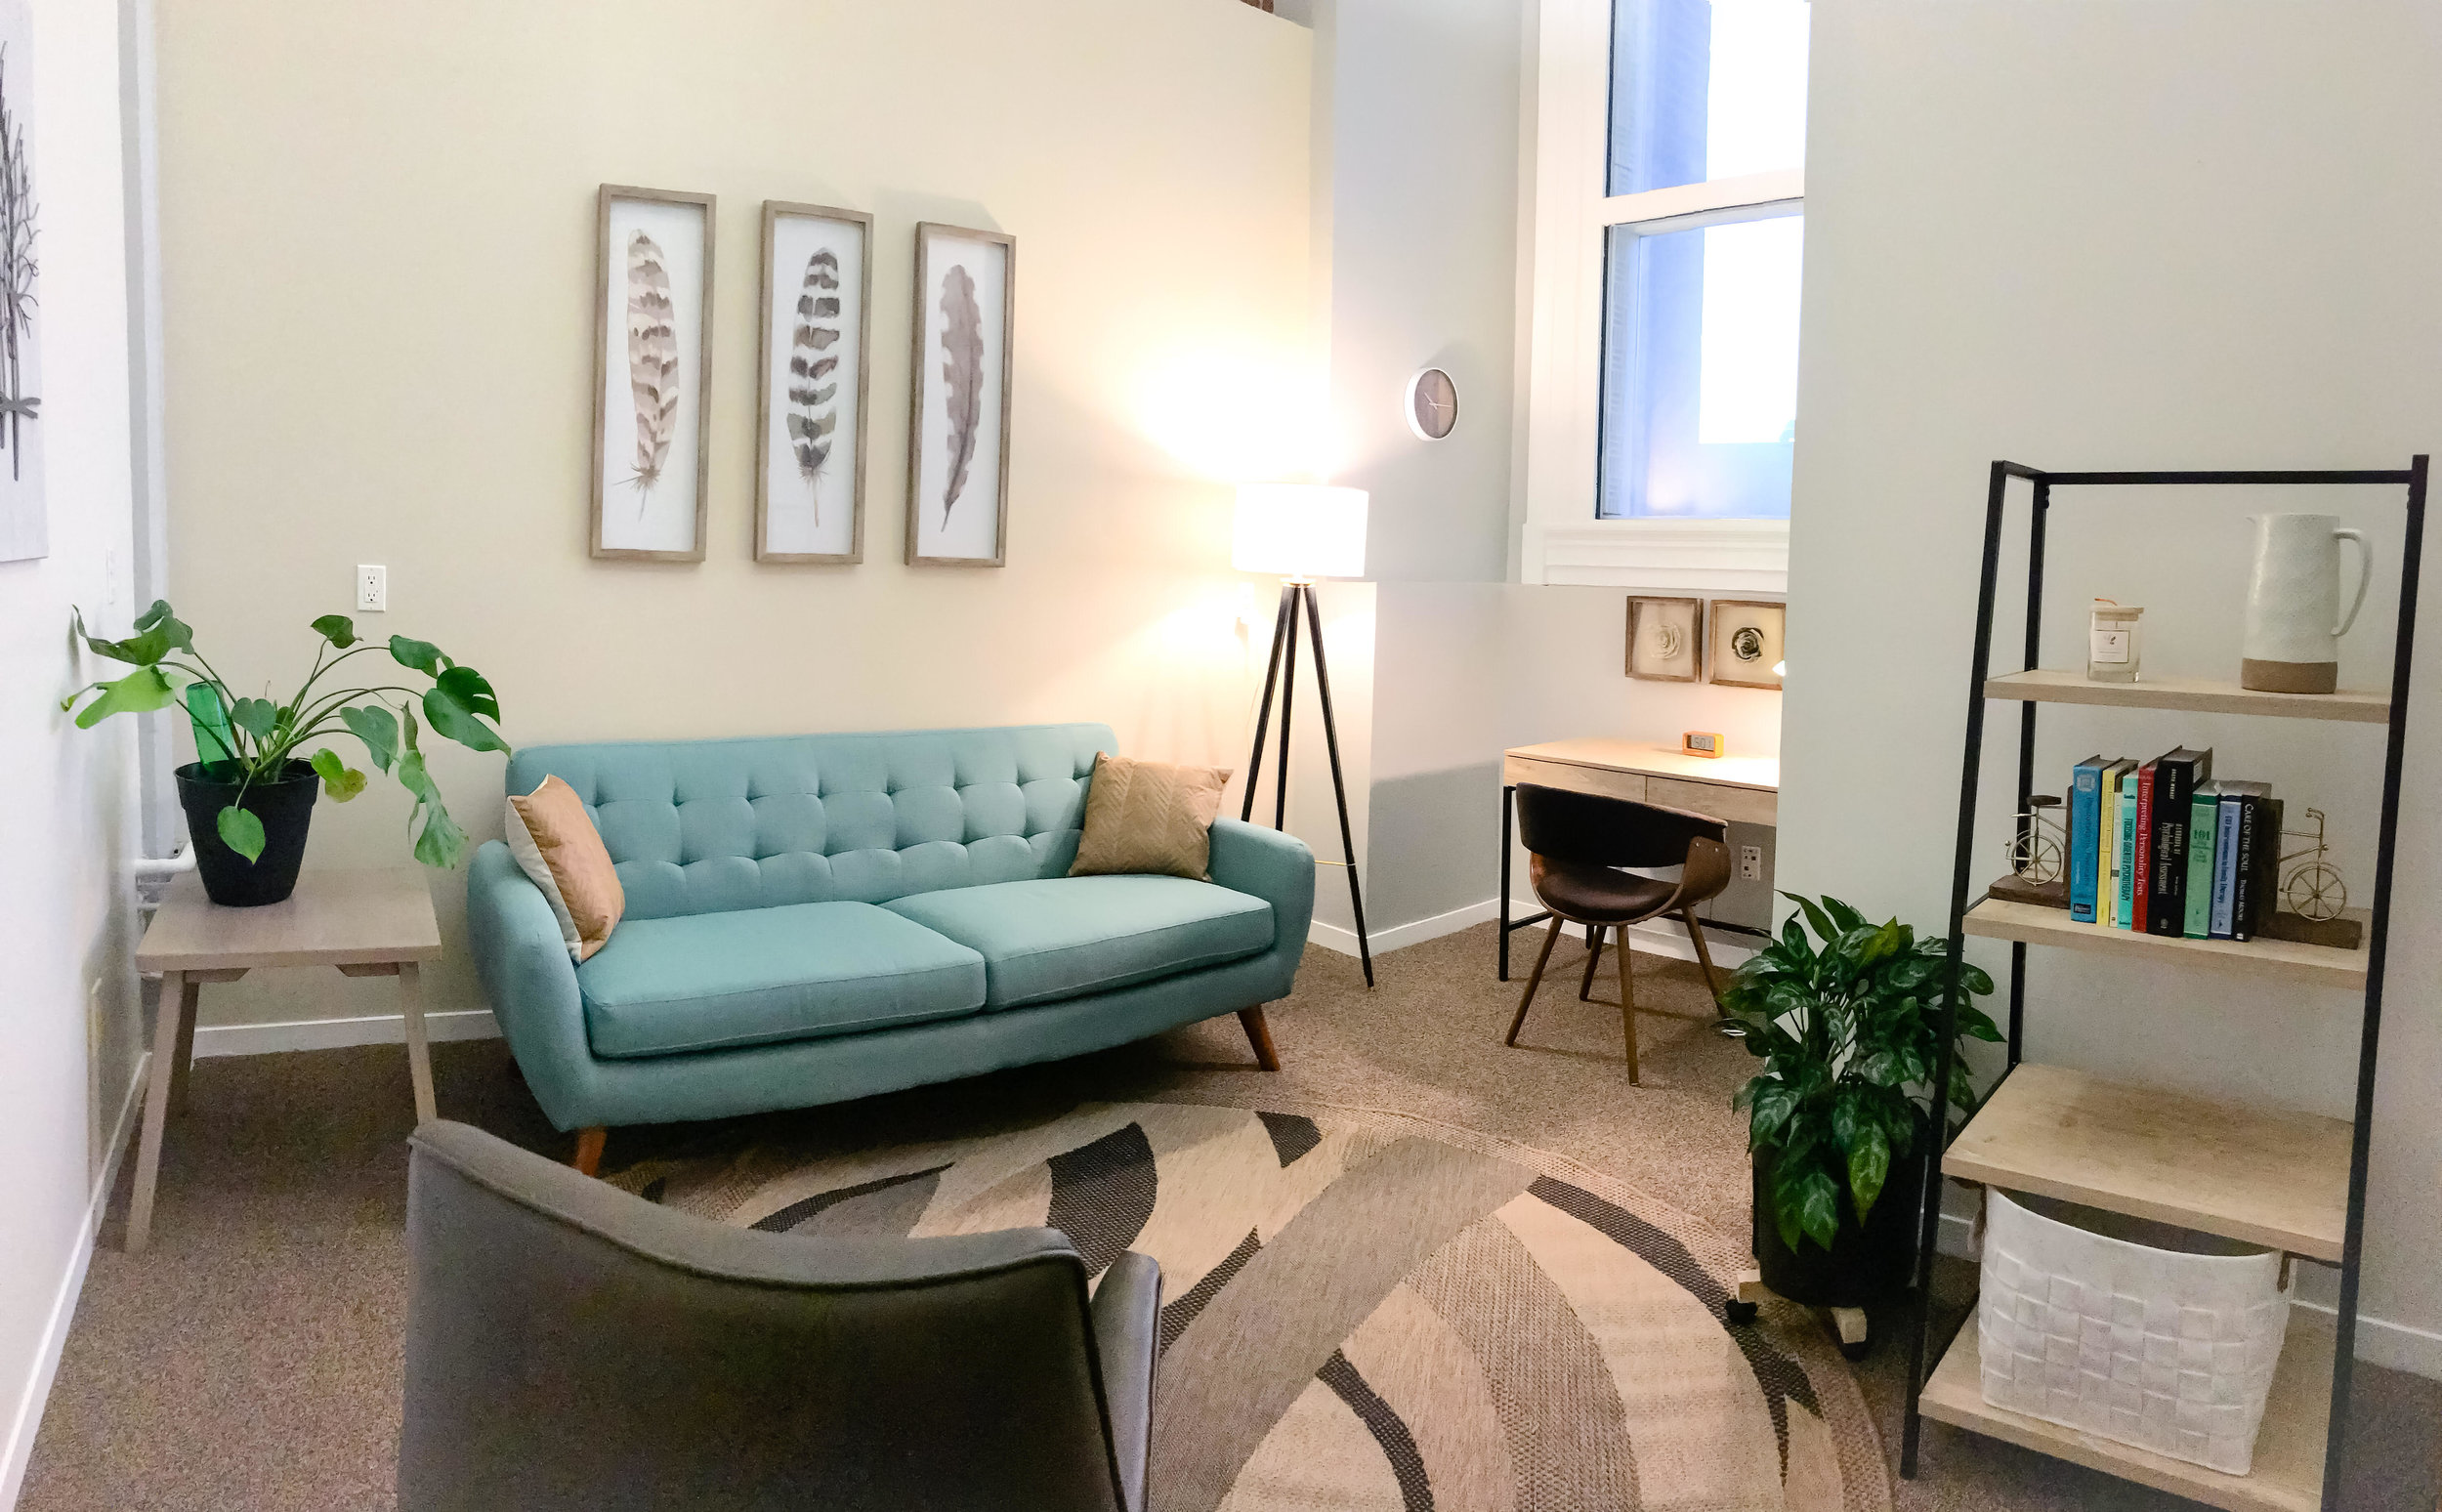 San Francisco's Premier  couples Counseling & Sex Therapy center - Our highly skilled sex & relationship therapists are LGBTQIA sensitive, sex positive, trauma informed, kink/poly friendly and welcoming of cultural, sexual and gender diversity.